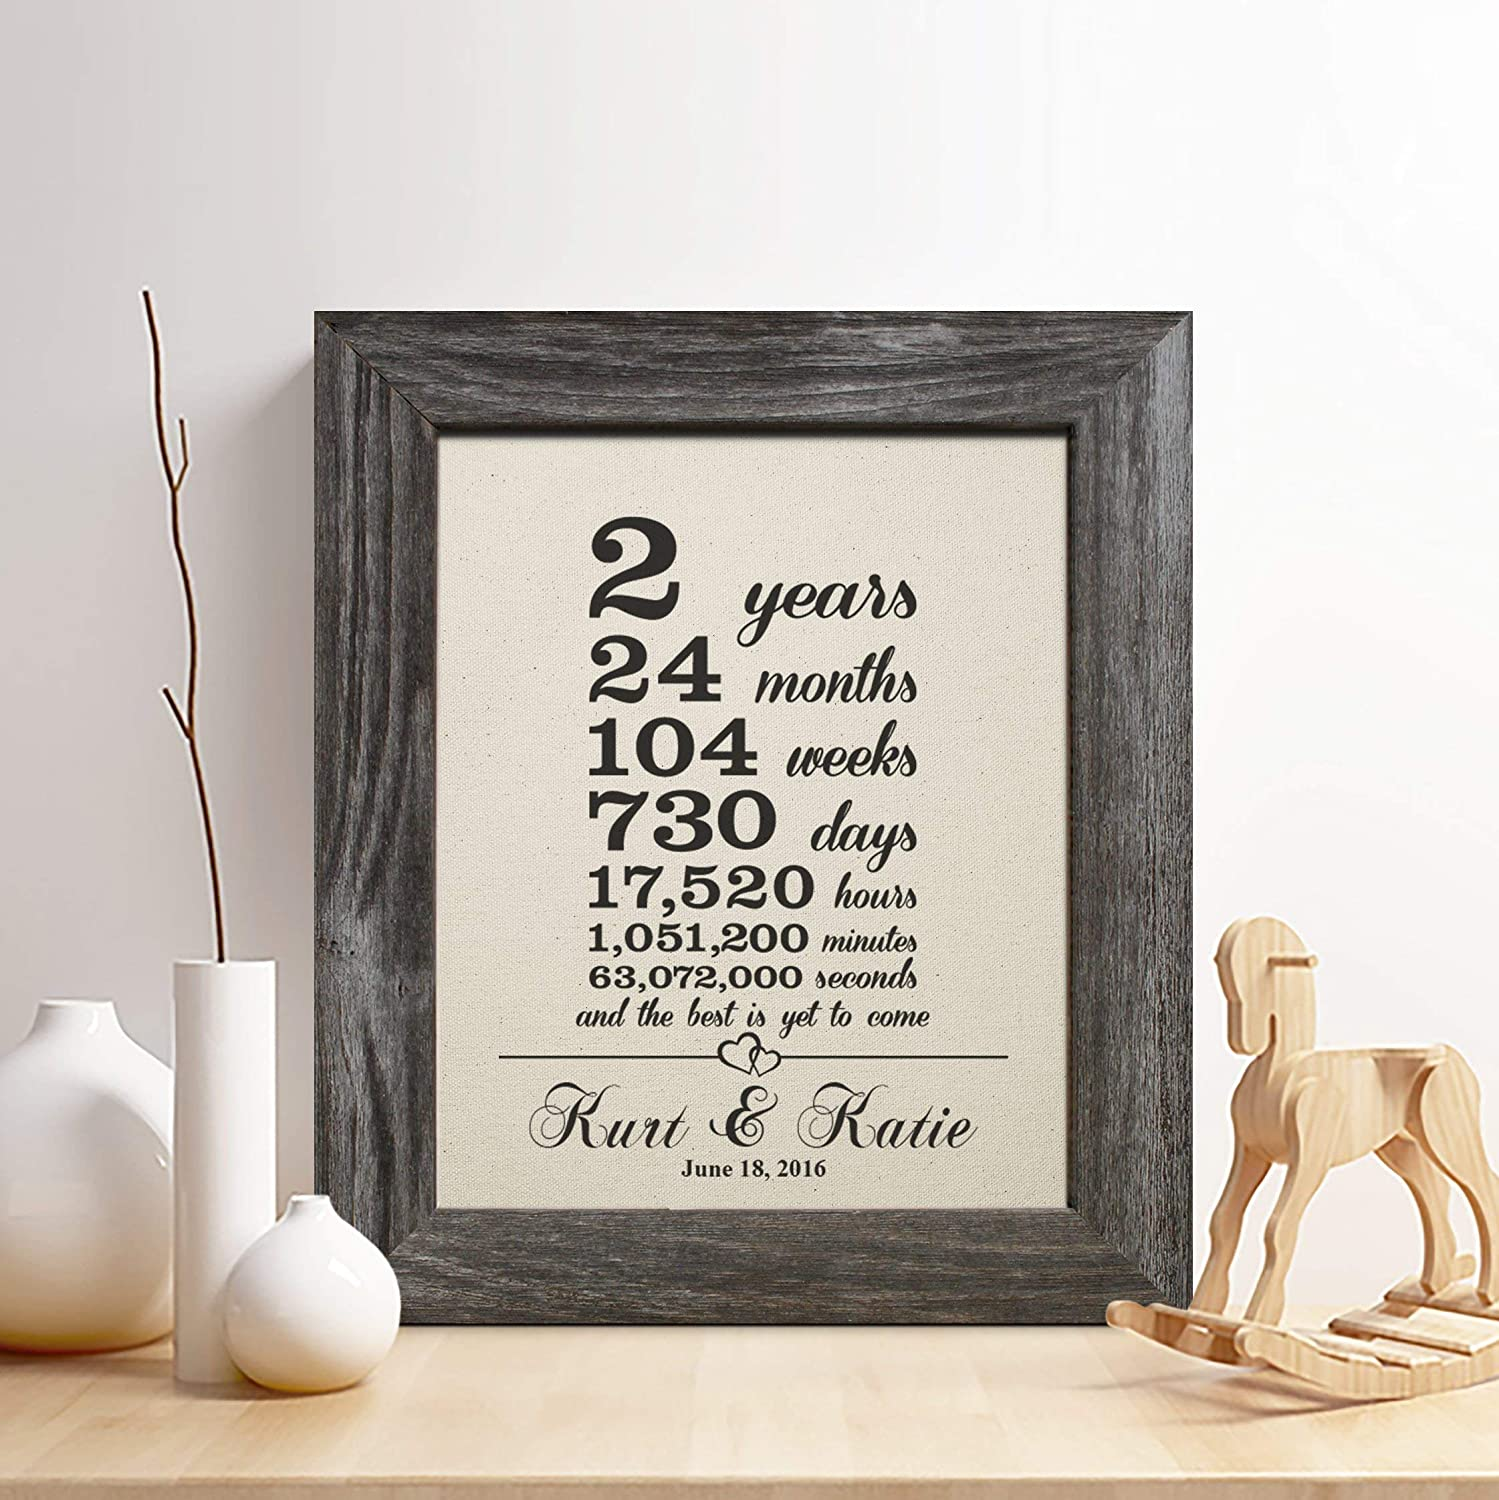 Amazon Com Personalized 2nd Cotton Anniversary Gift For Him Or Her 2 Years And Counting Cotton Print Handmade